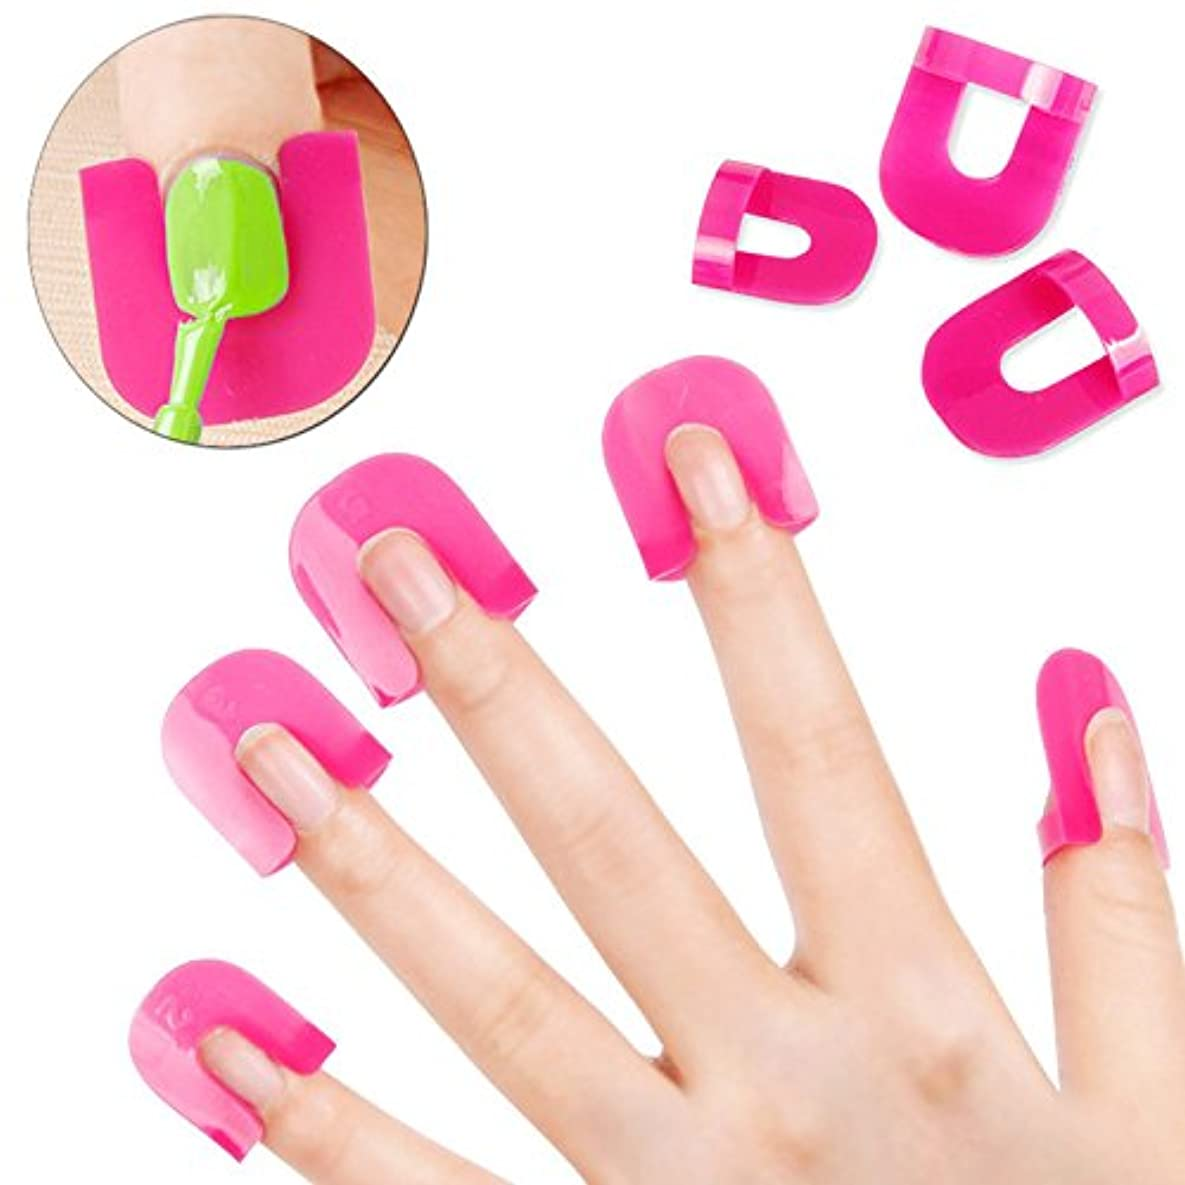 反響する災害放棄するNew 26PCS Professional French Nail Art Manicure Stickers Tips Finger Cover Polish Shield Protector Plastic Case...